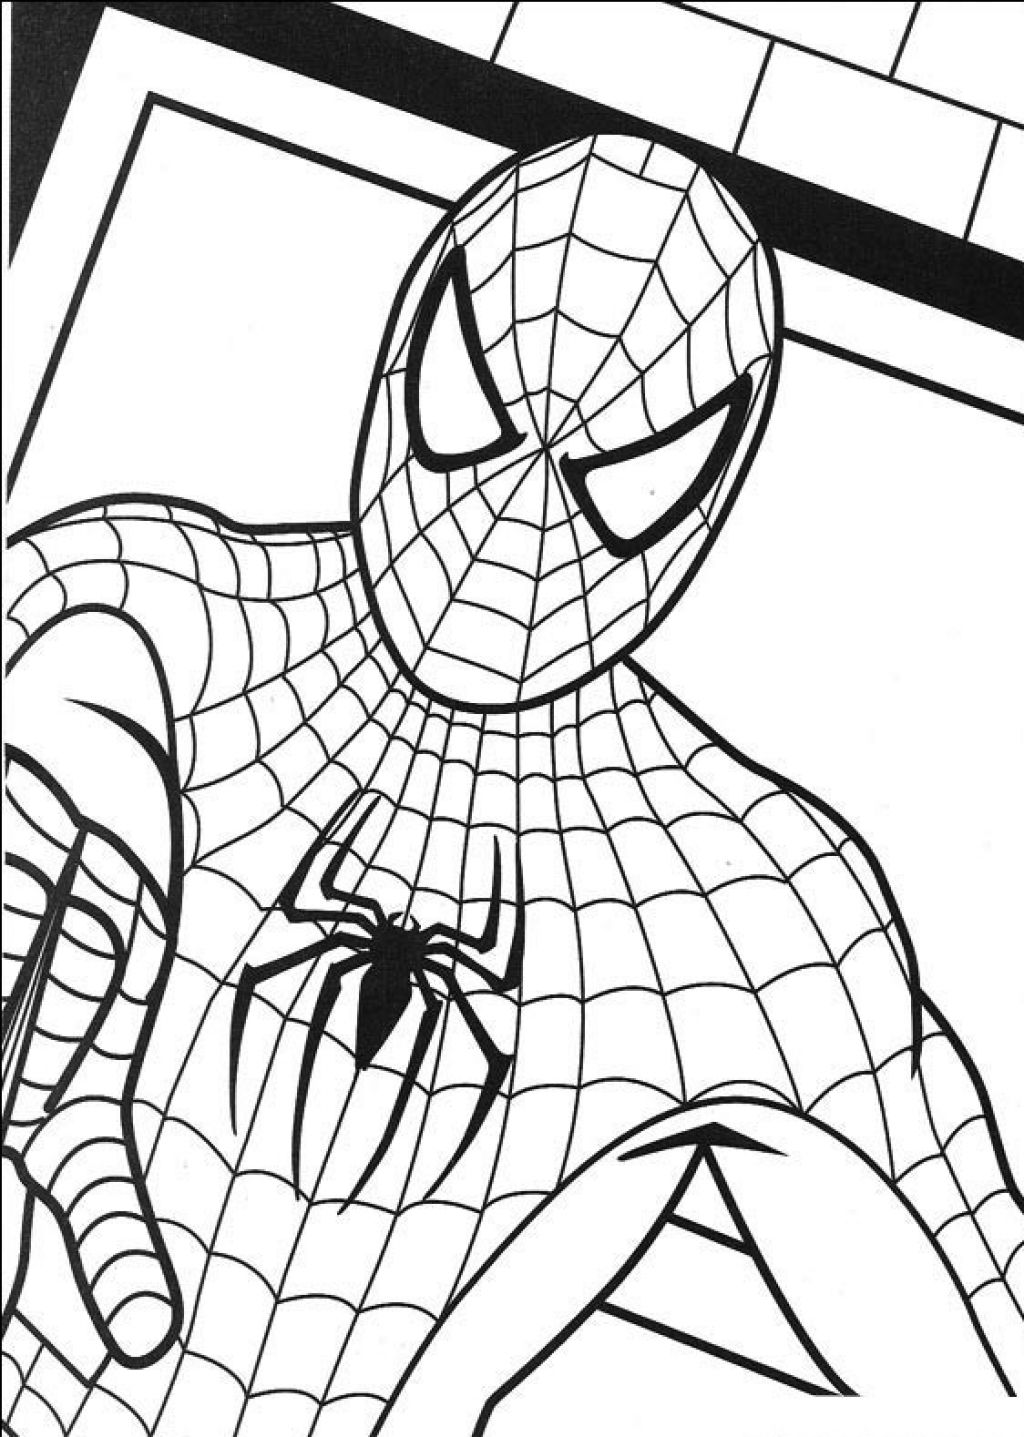 coloring pages spiderman - Spiderman Coloring Pages Printable